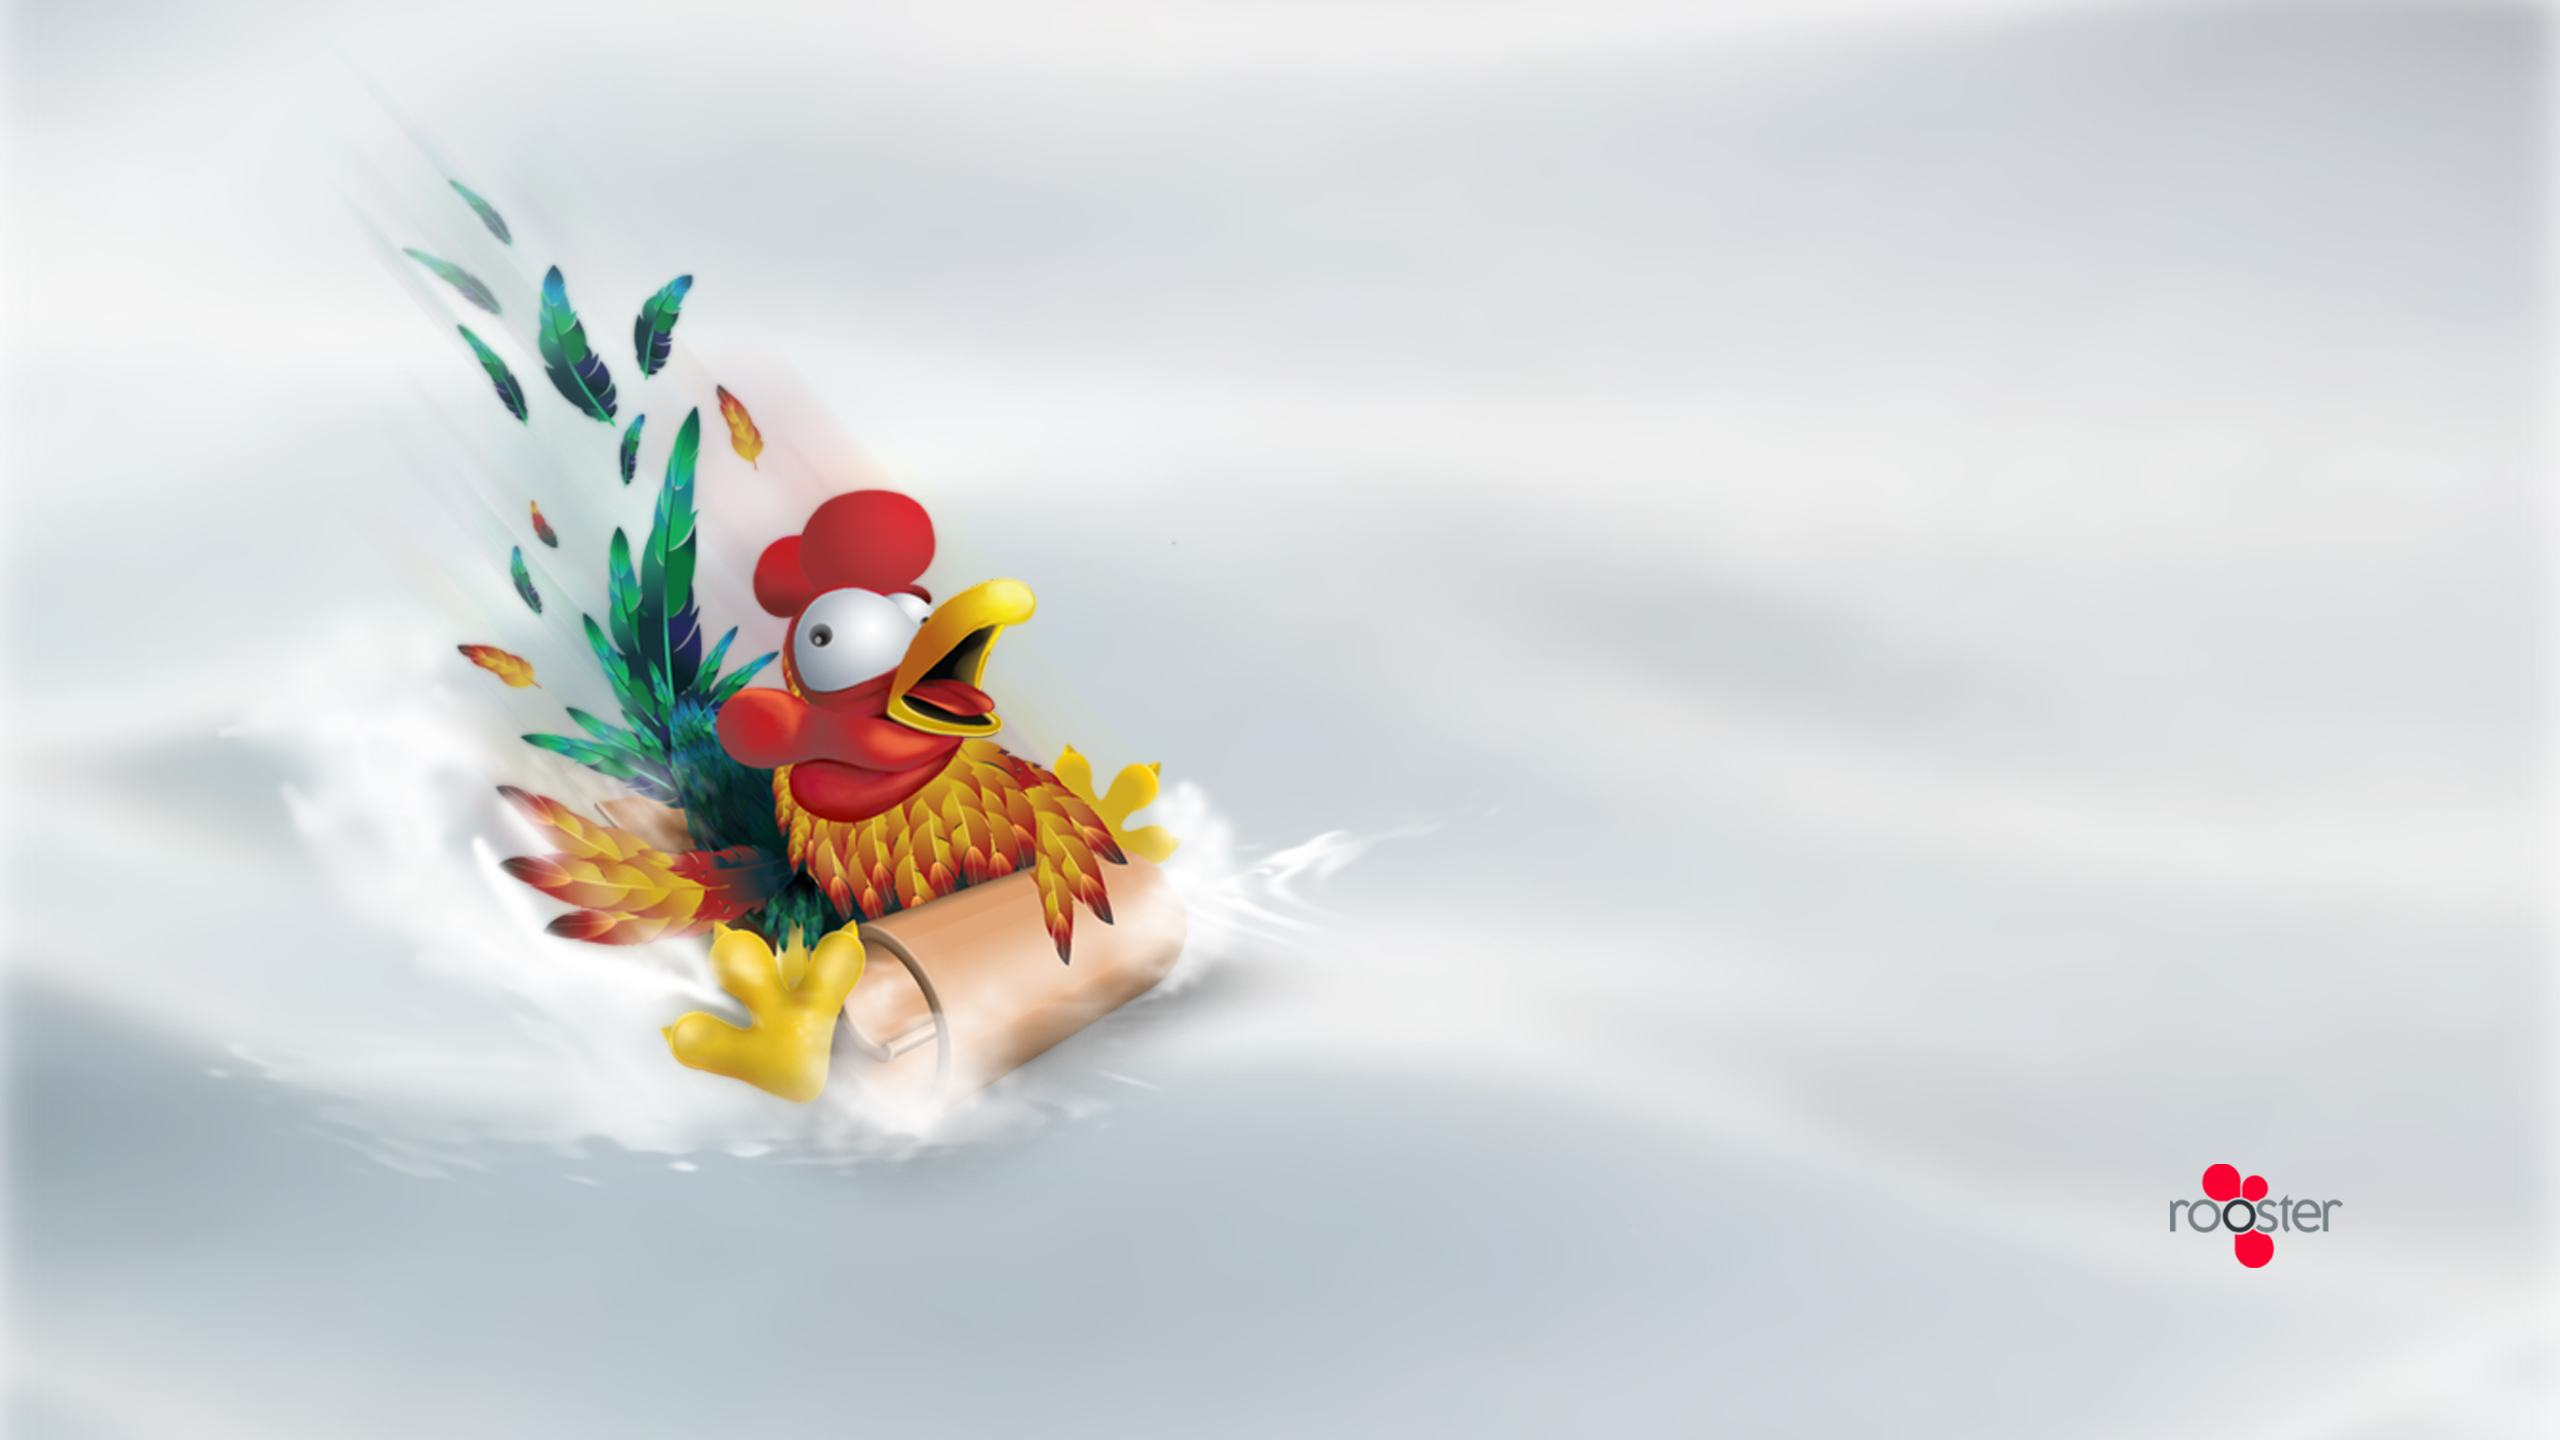 wallpapers birds holiday pictures rooster wallpaper 2560x1440 2560x1440